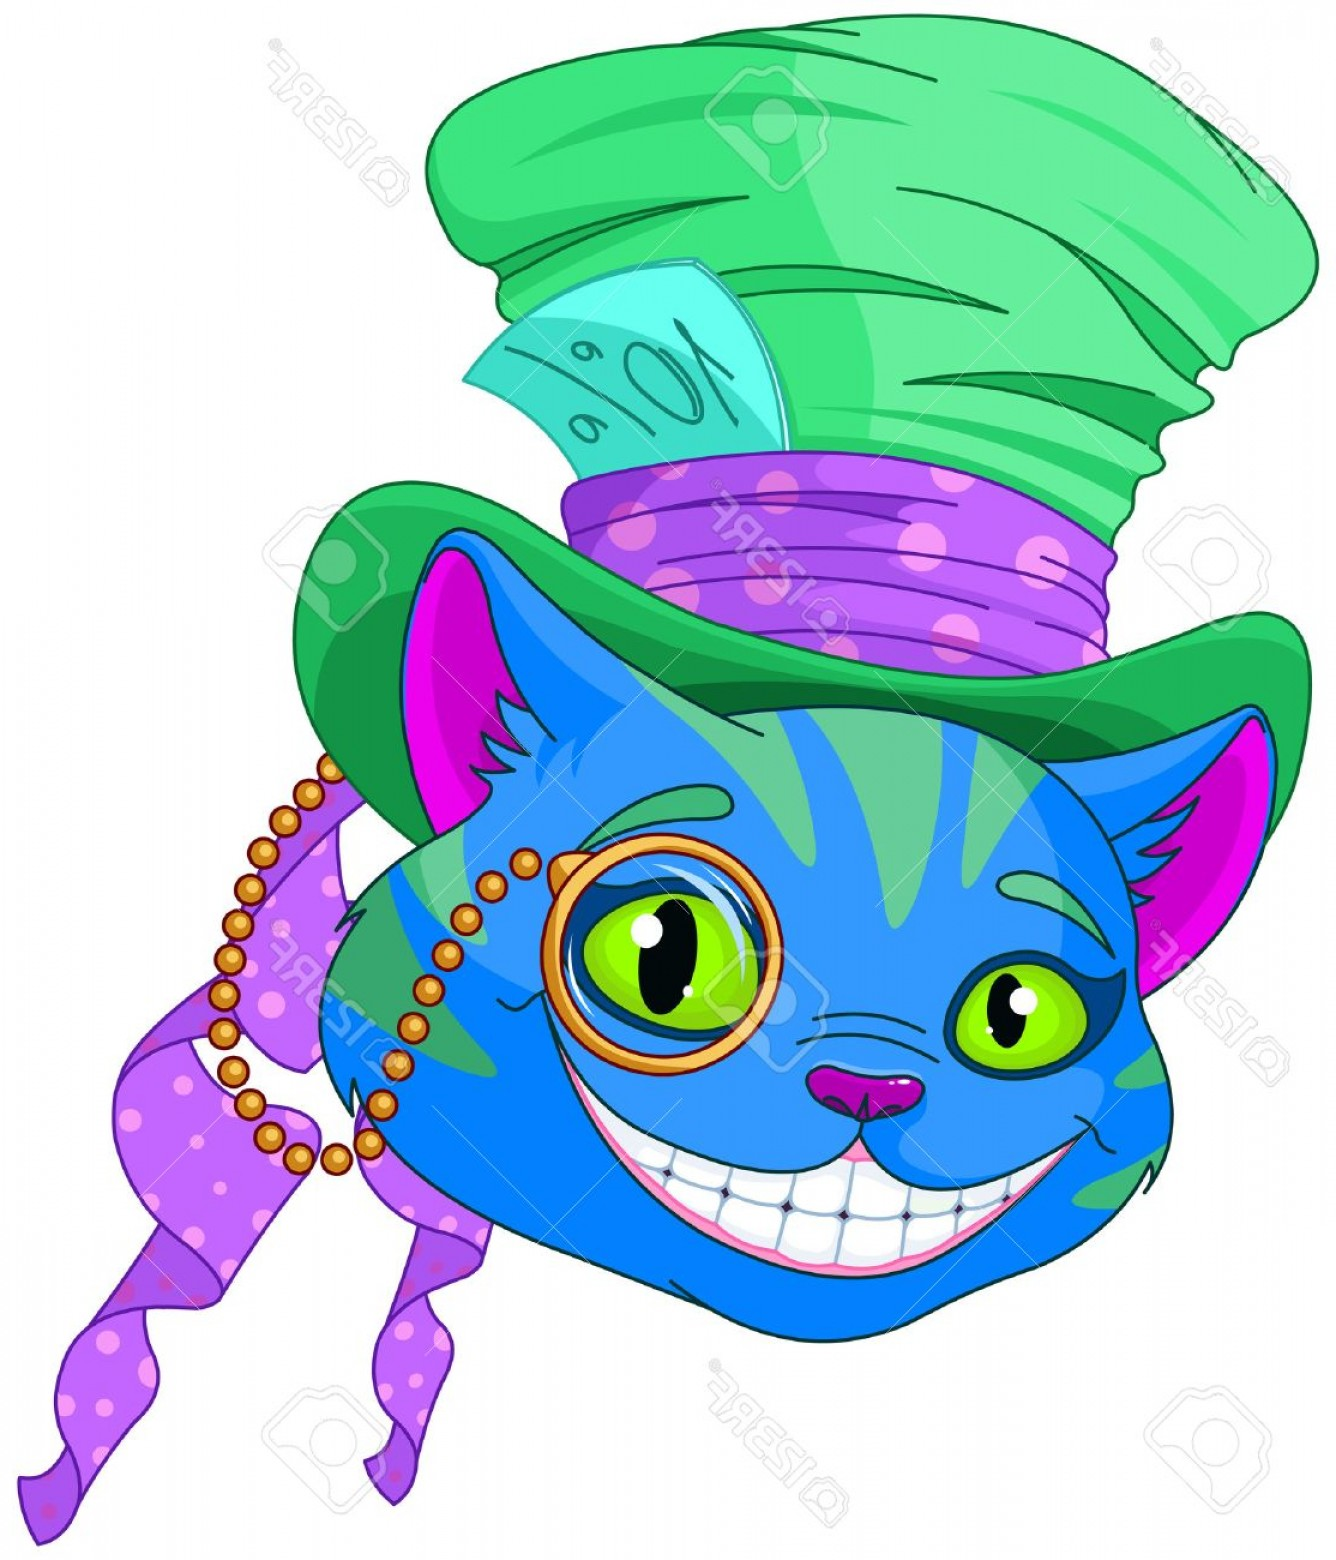 1336x1560 Cheshire Cat Silhouette Vector Arenawp